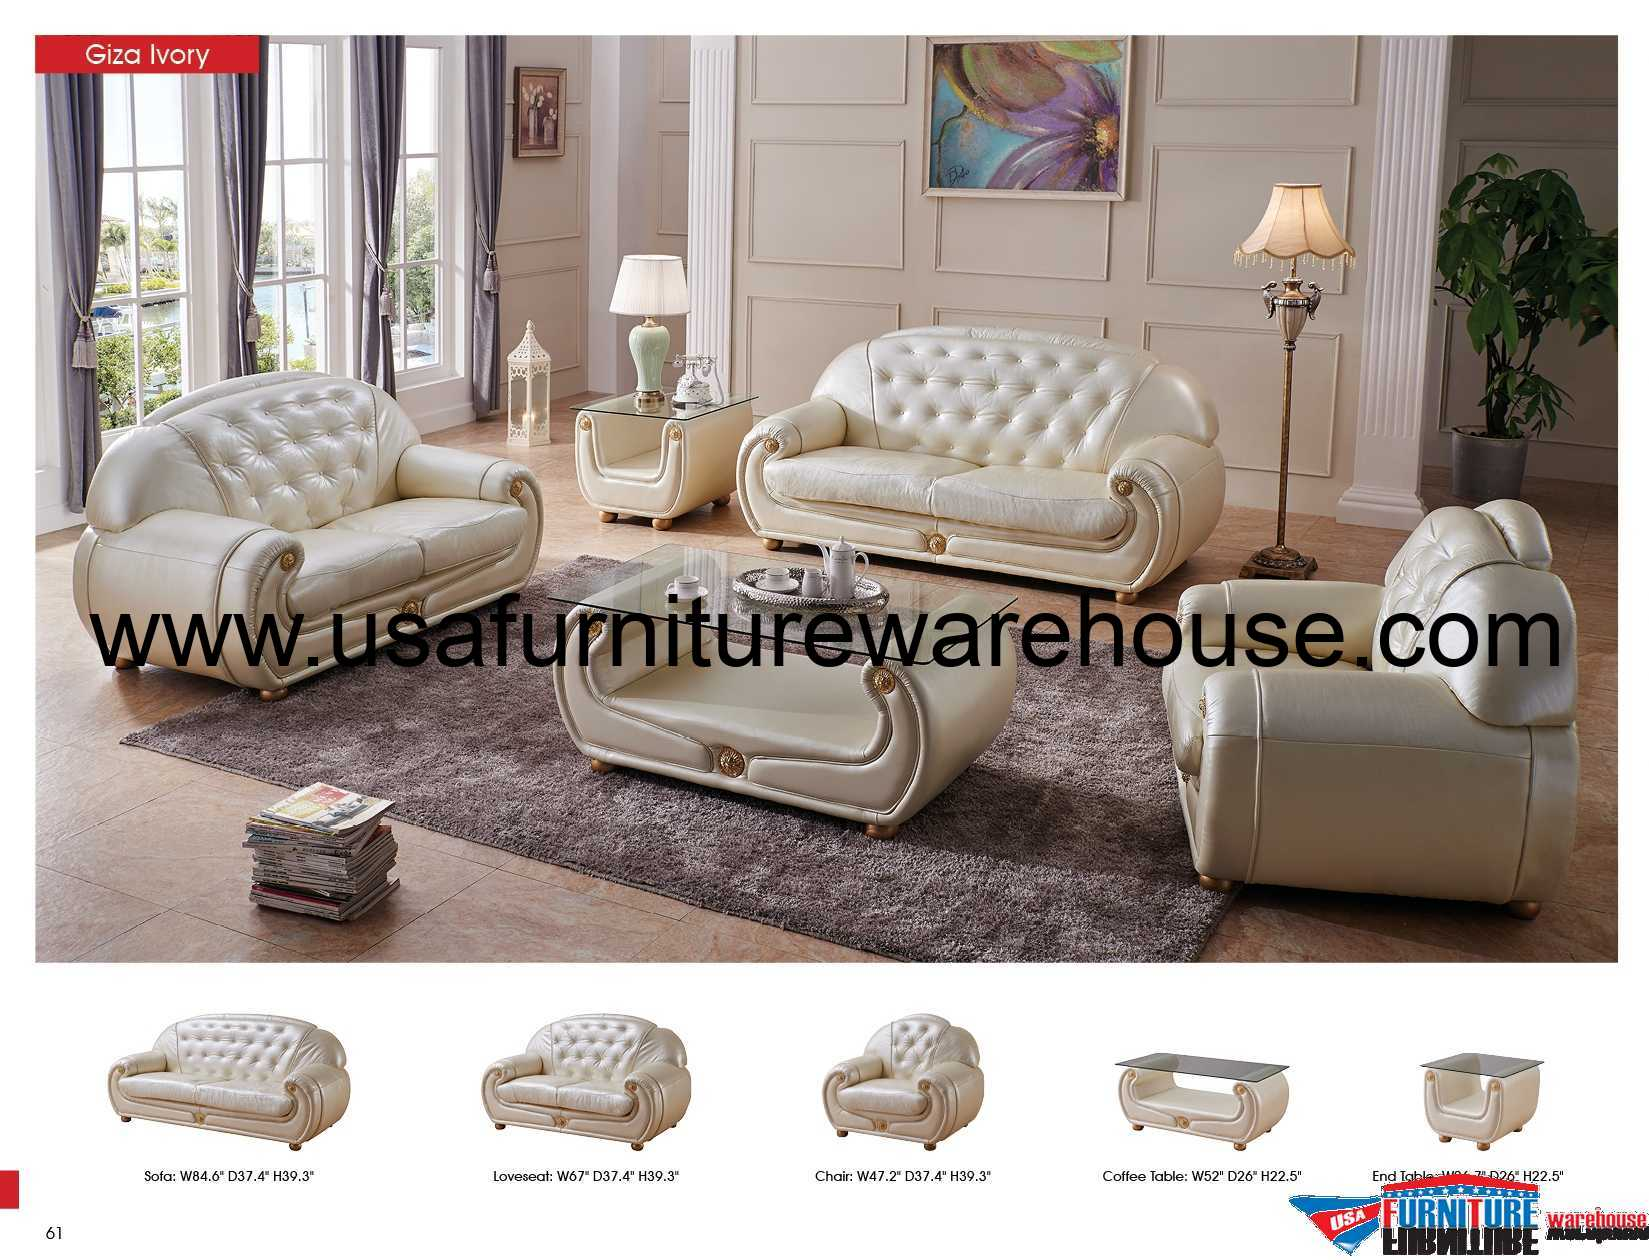 Giza Italian Leather Sofa Set